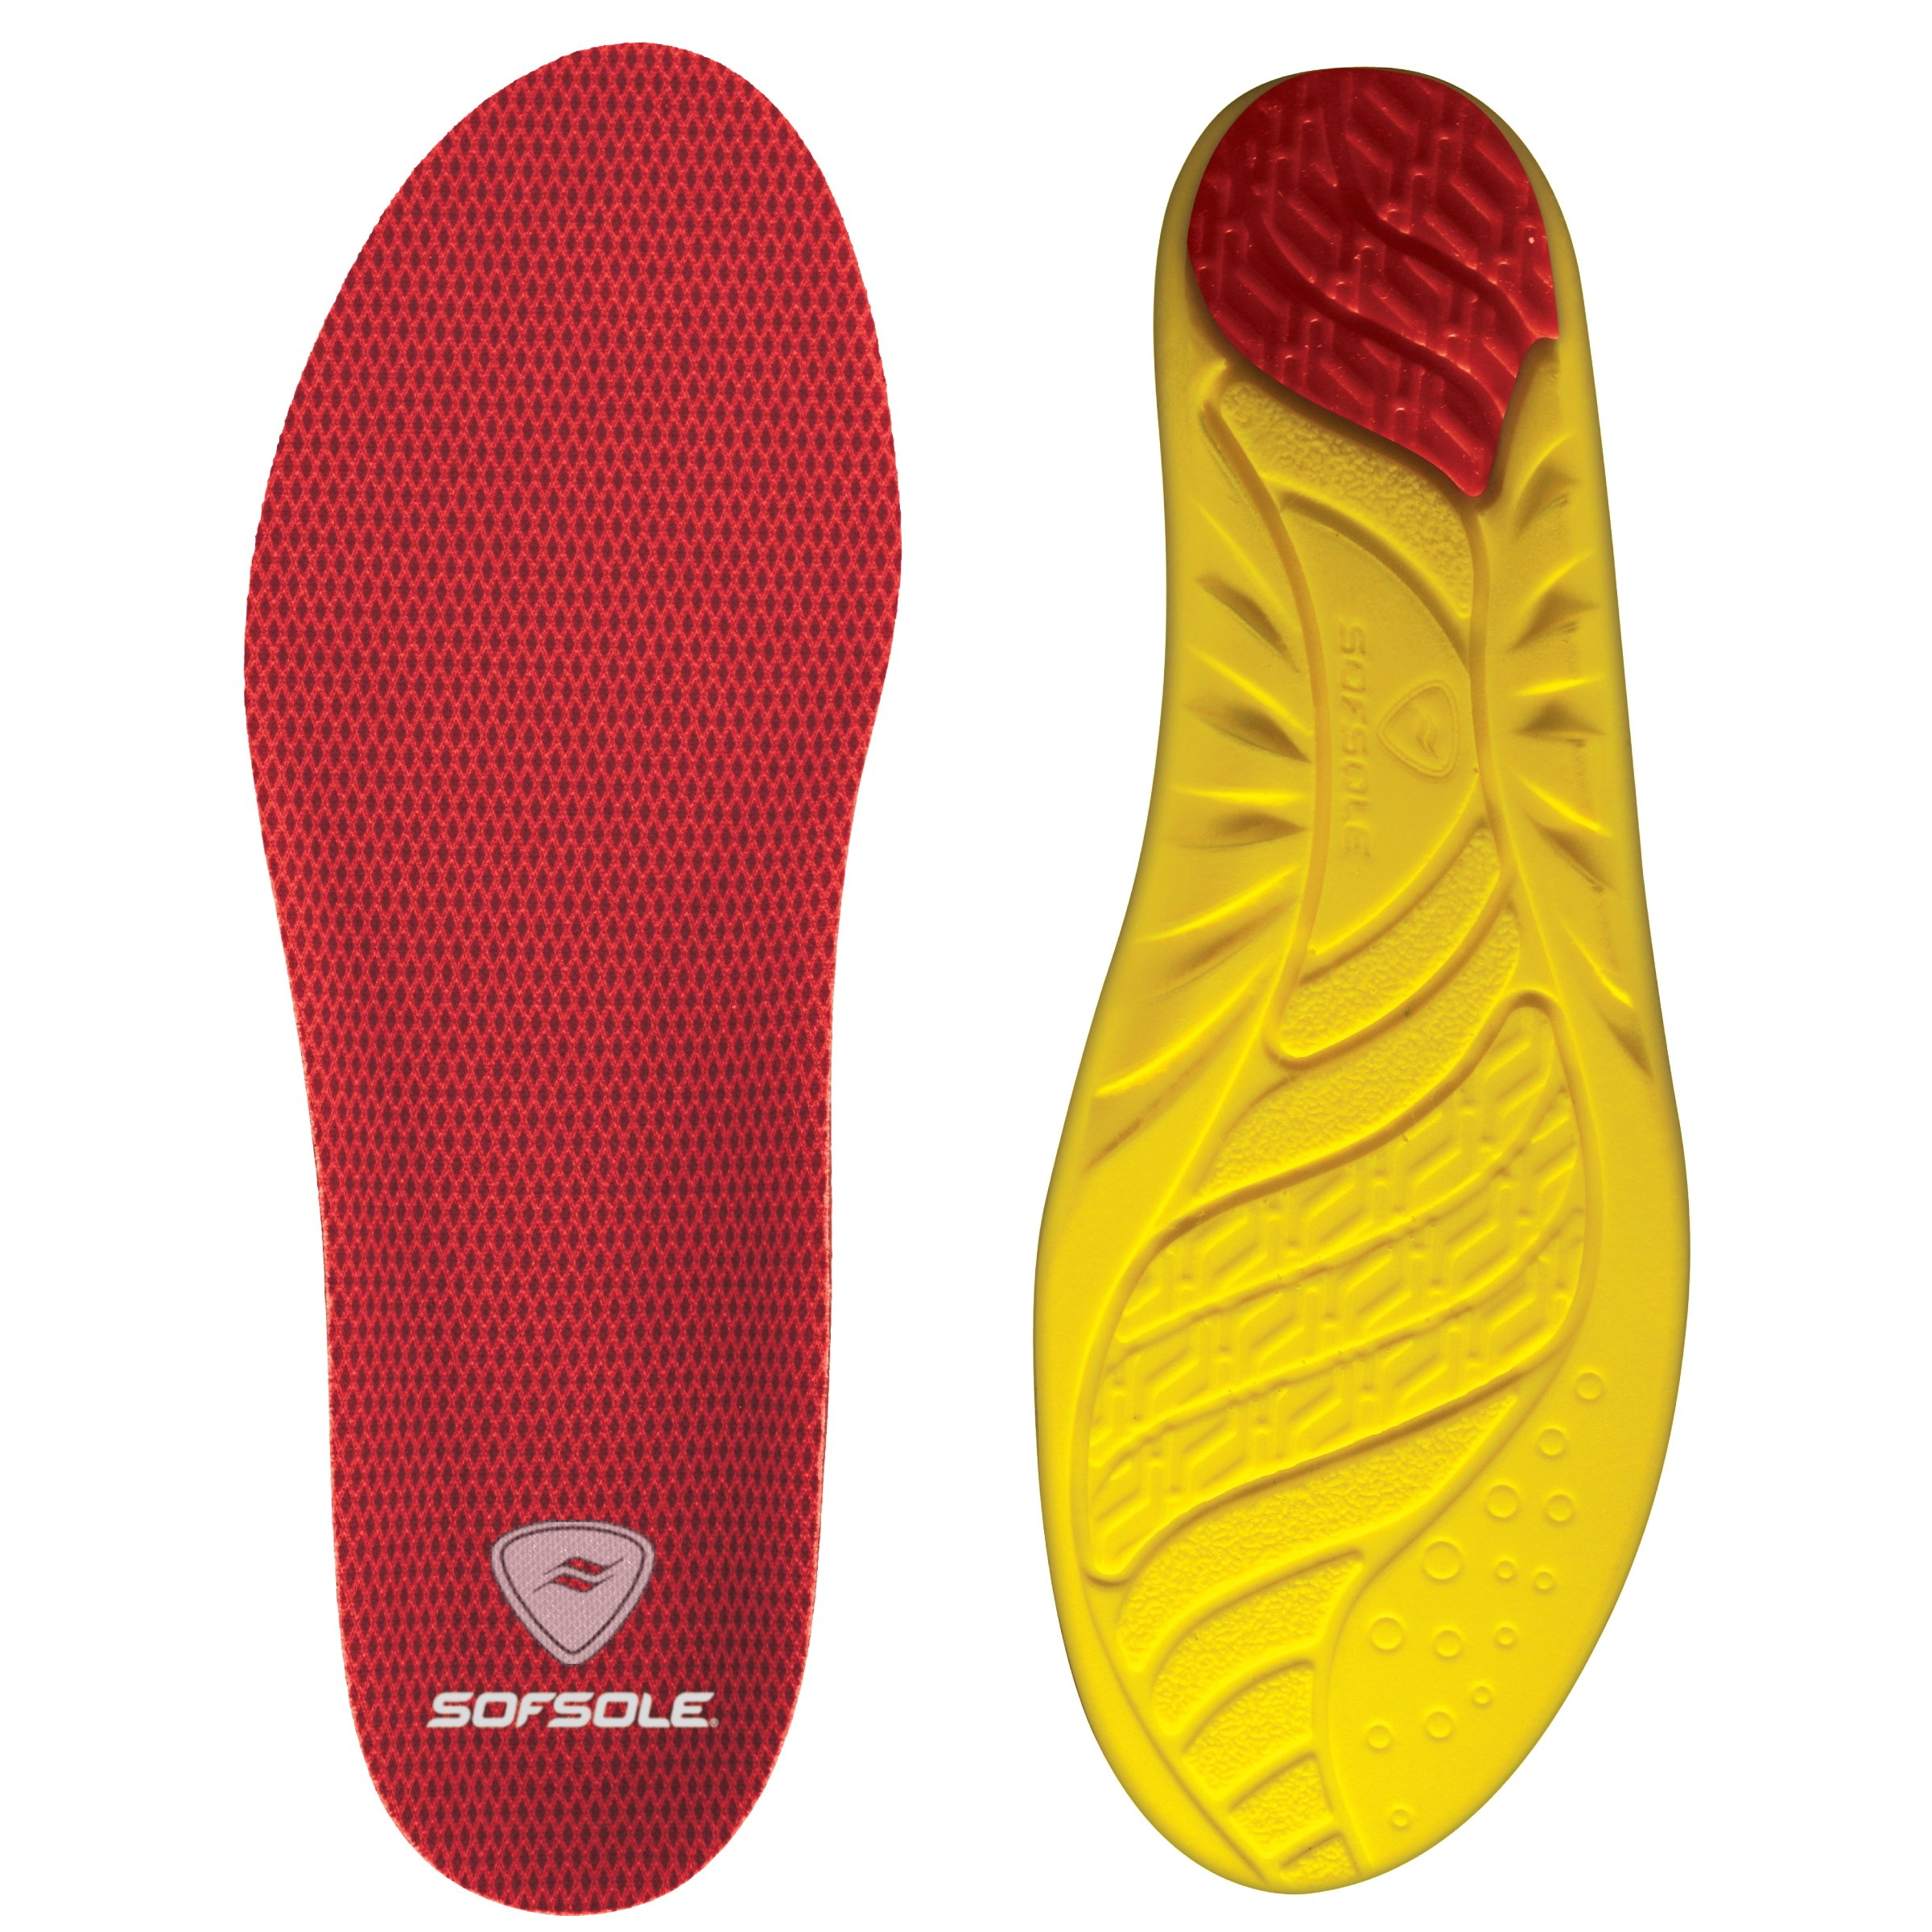 Sof Sole Insoles Men's High Arch Performance Full-Length Foam Shoe Insert, Men's 7-8.5 Red